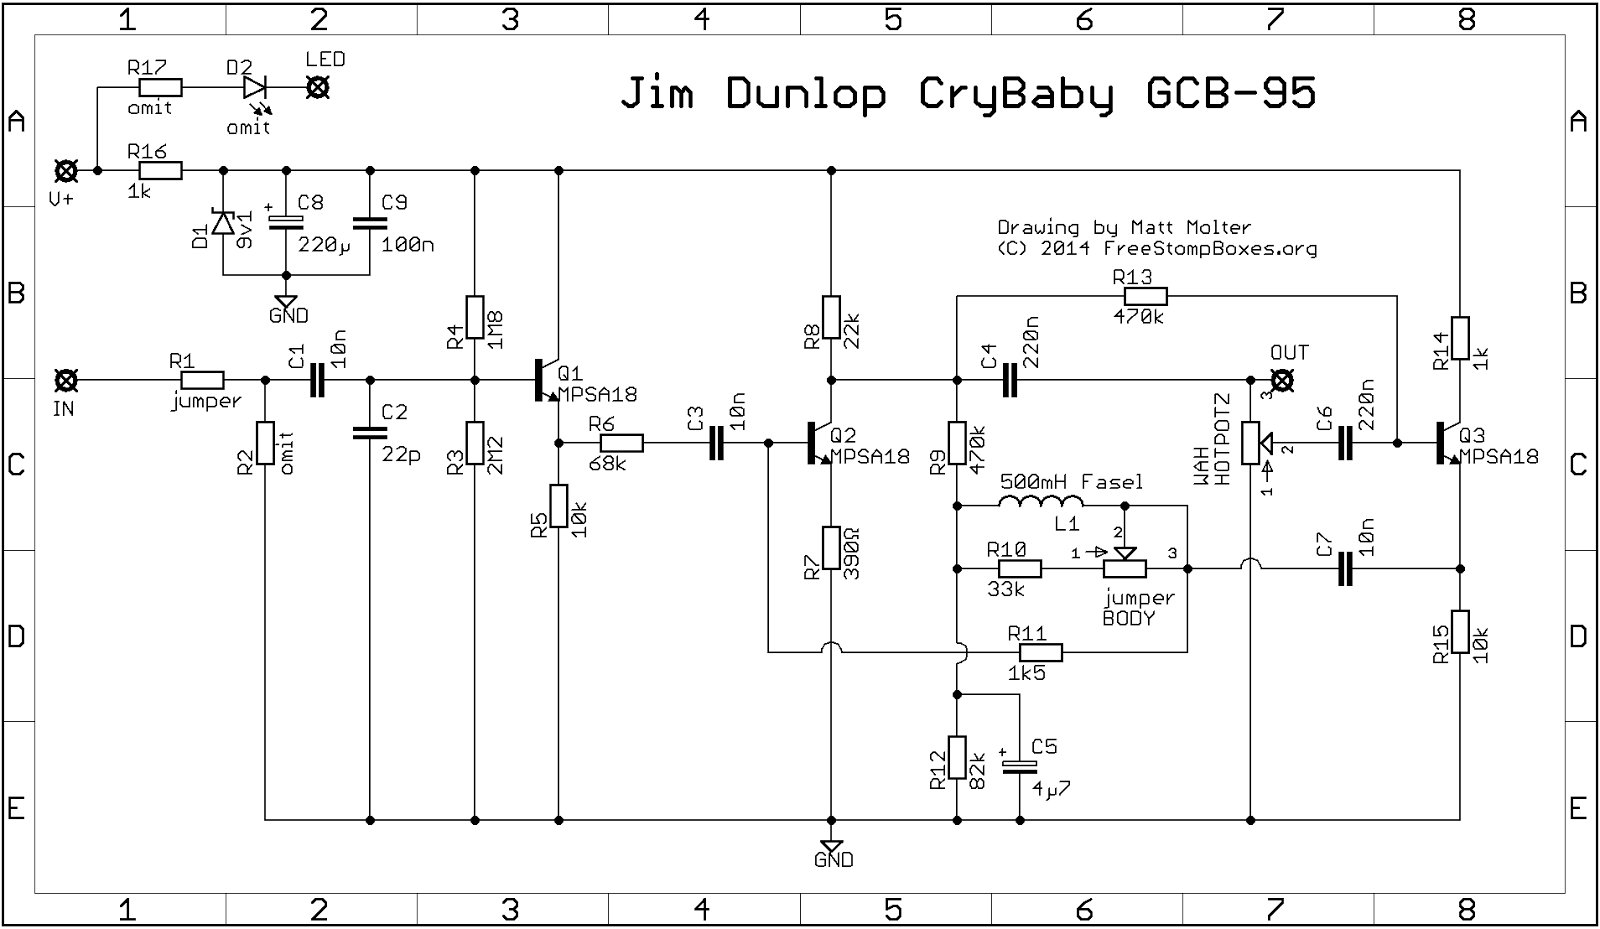 Crybaby%2BGCB 95 guitar fx layouts jim dunlop crybaby gcb 95 crybaby gcb-95 wiring diagram at fashall.co